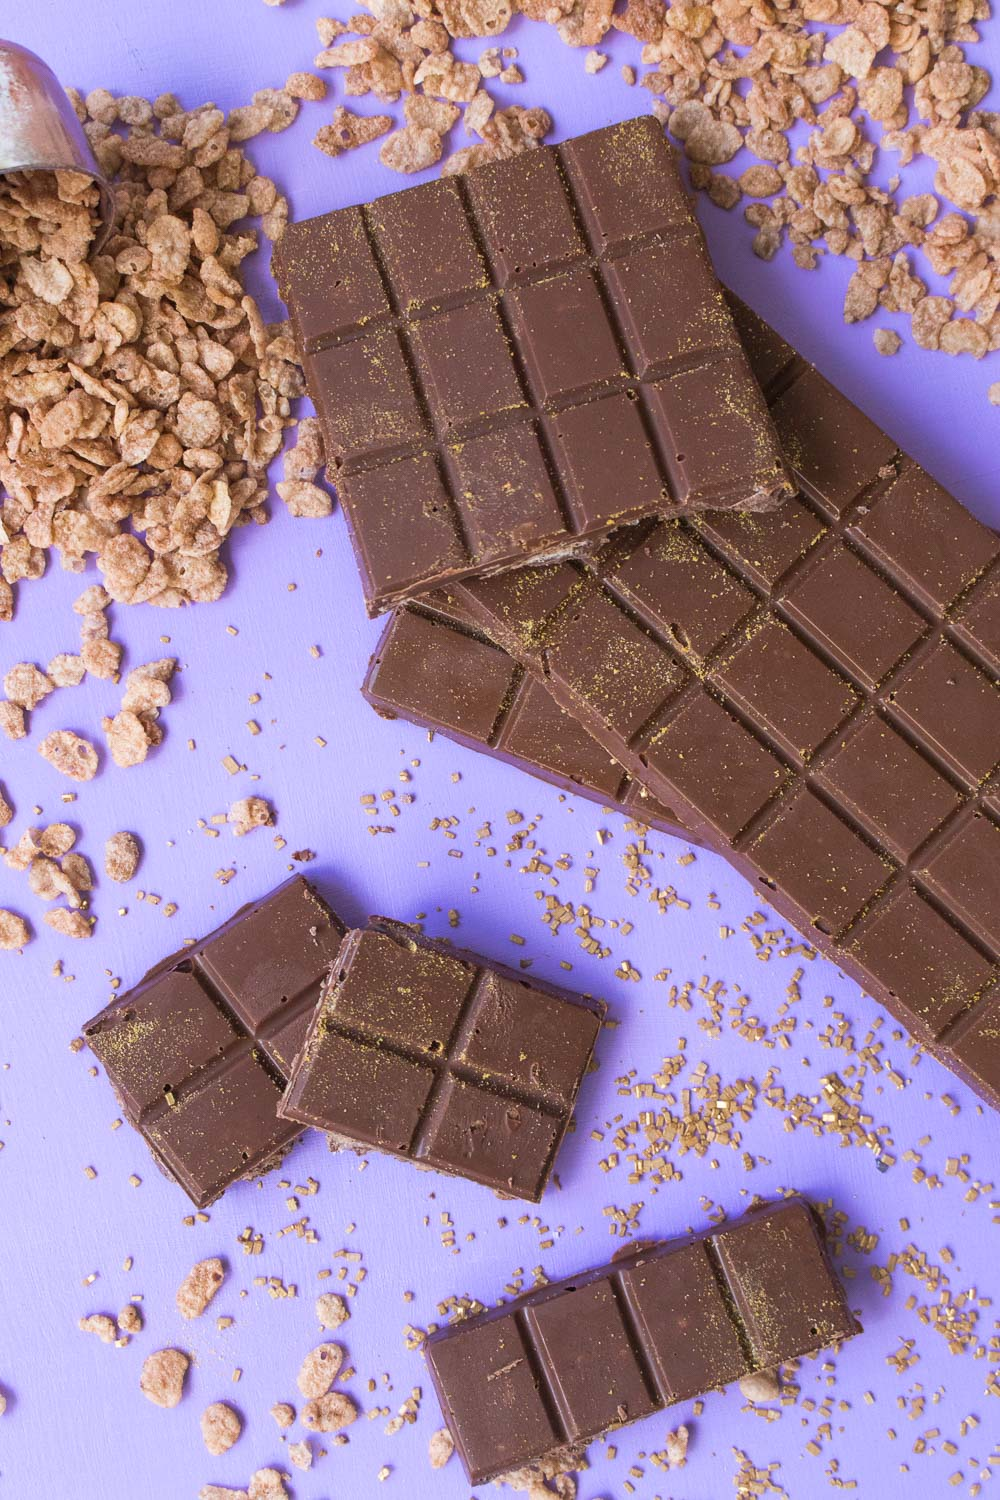 Spicy Cinnamon Crunch Chocolate Bars | Club Crafted